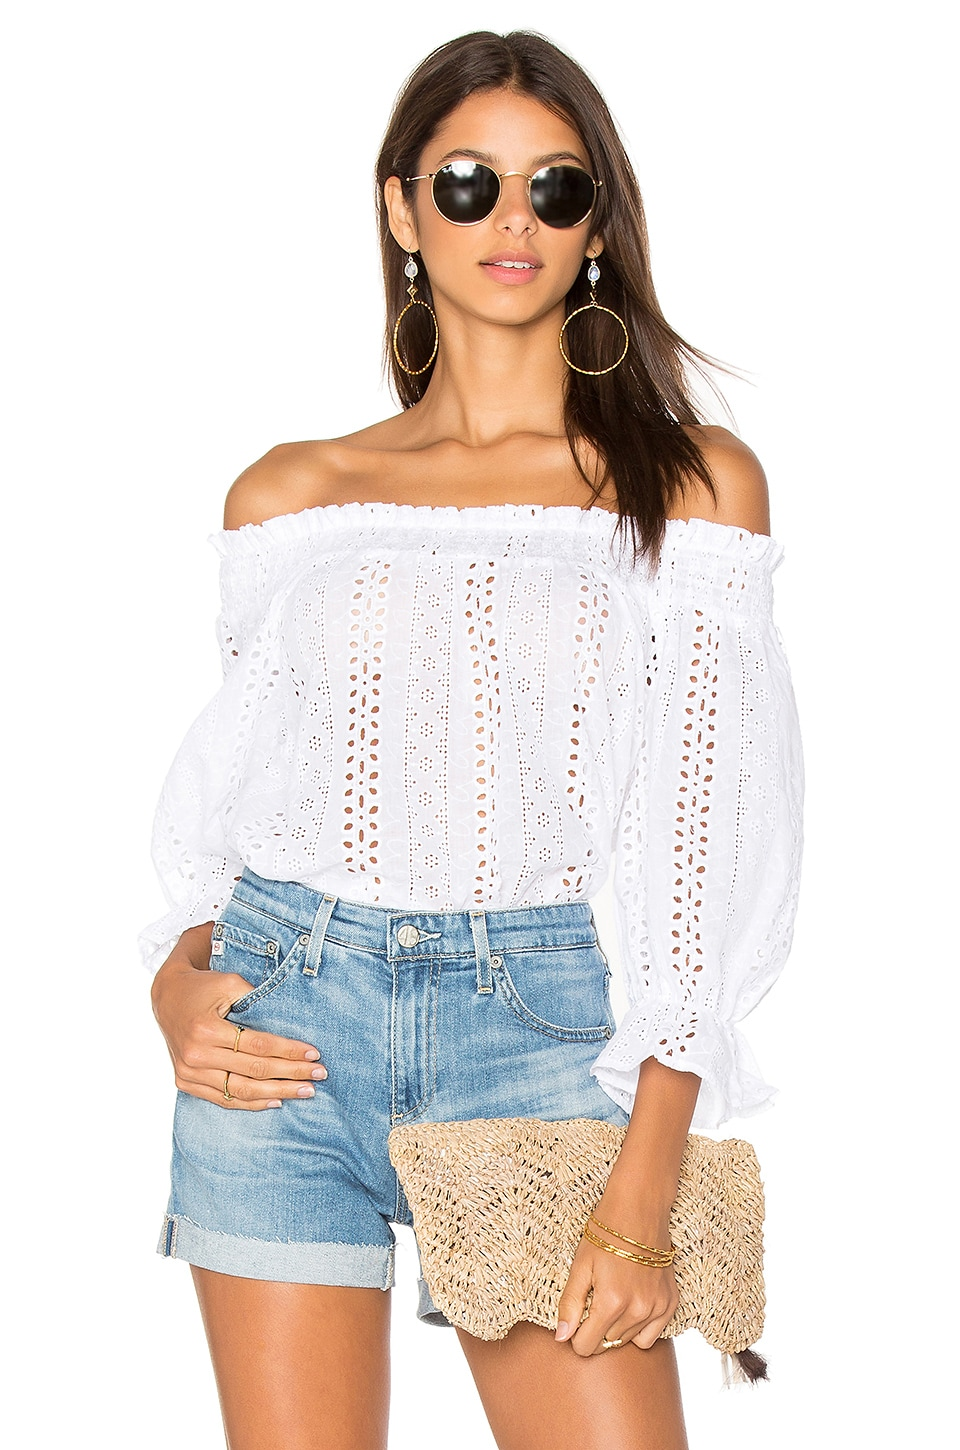 J.O.A. Off Shoulder Eyelet Top in White